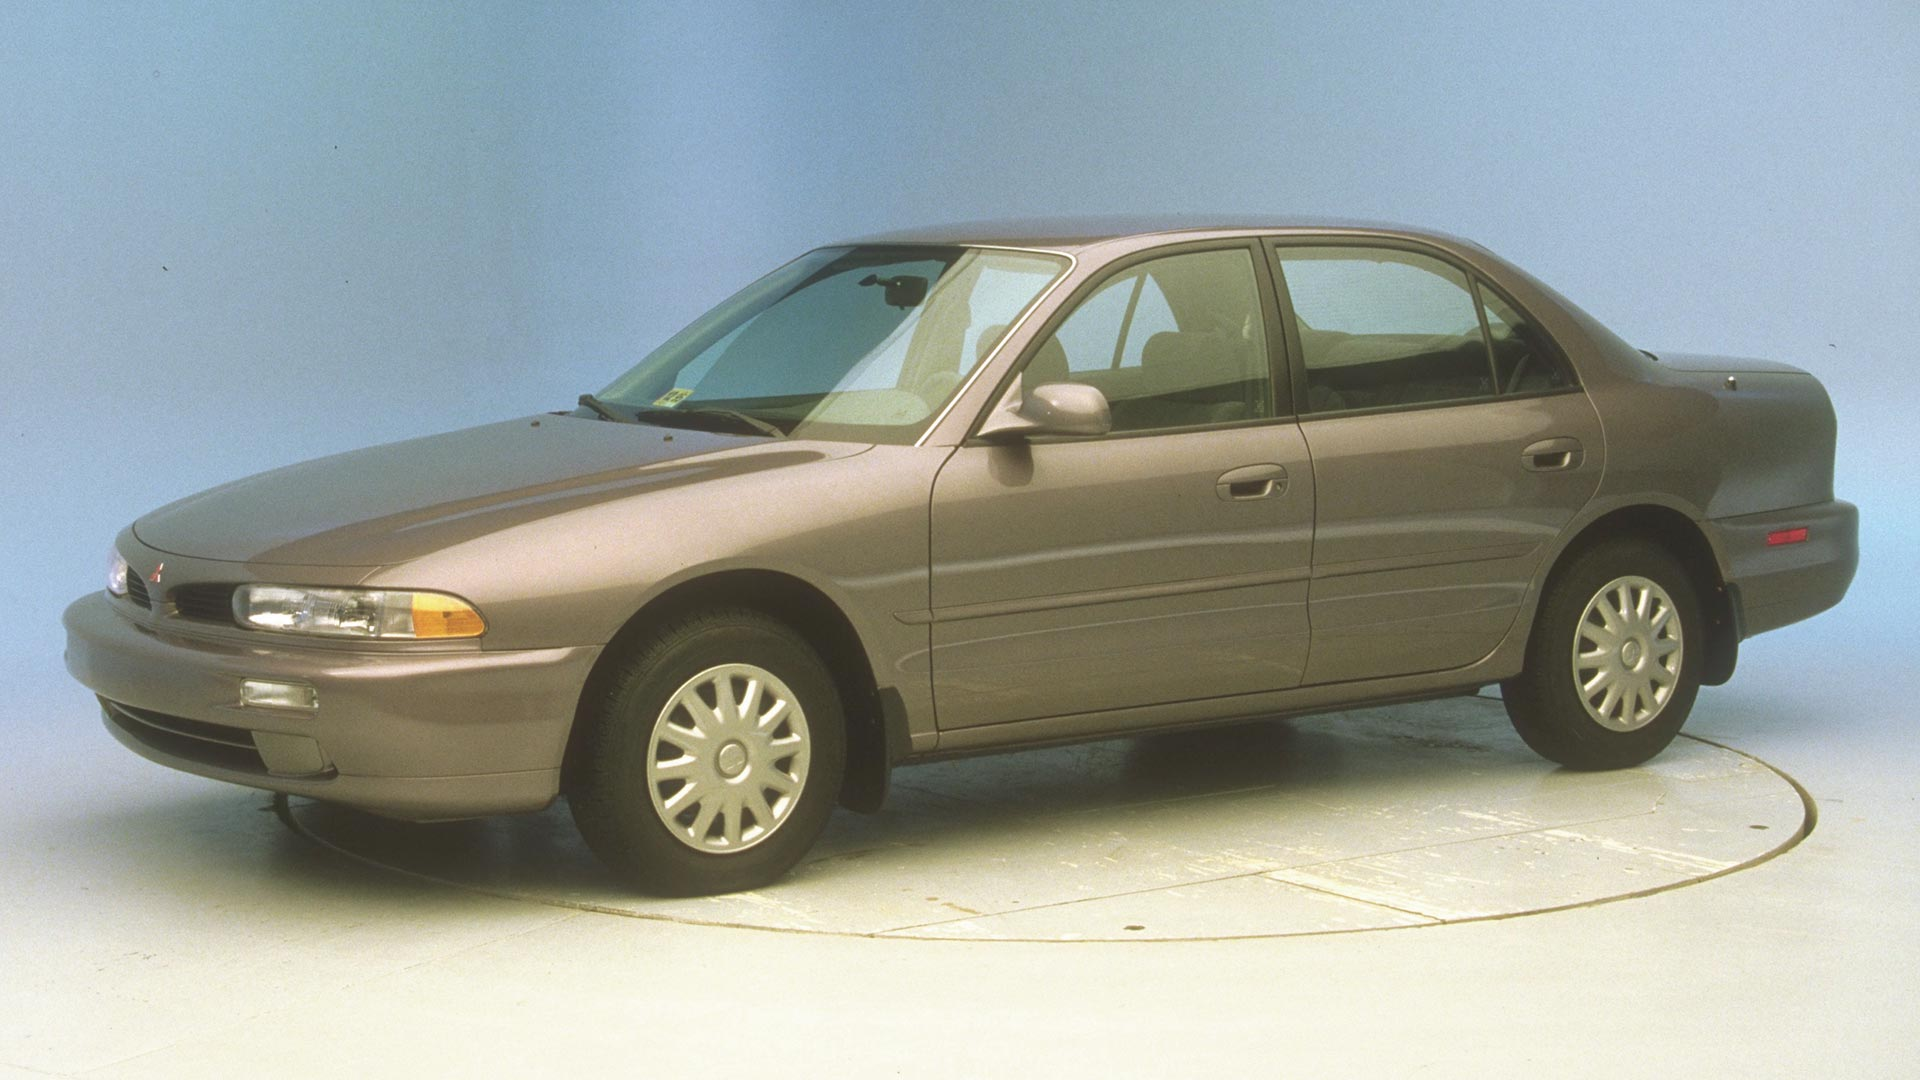 1998 Mitsubishi Galant 4-door sedan